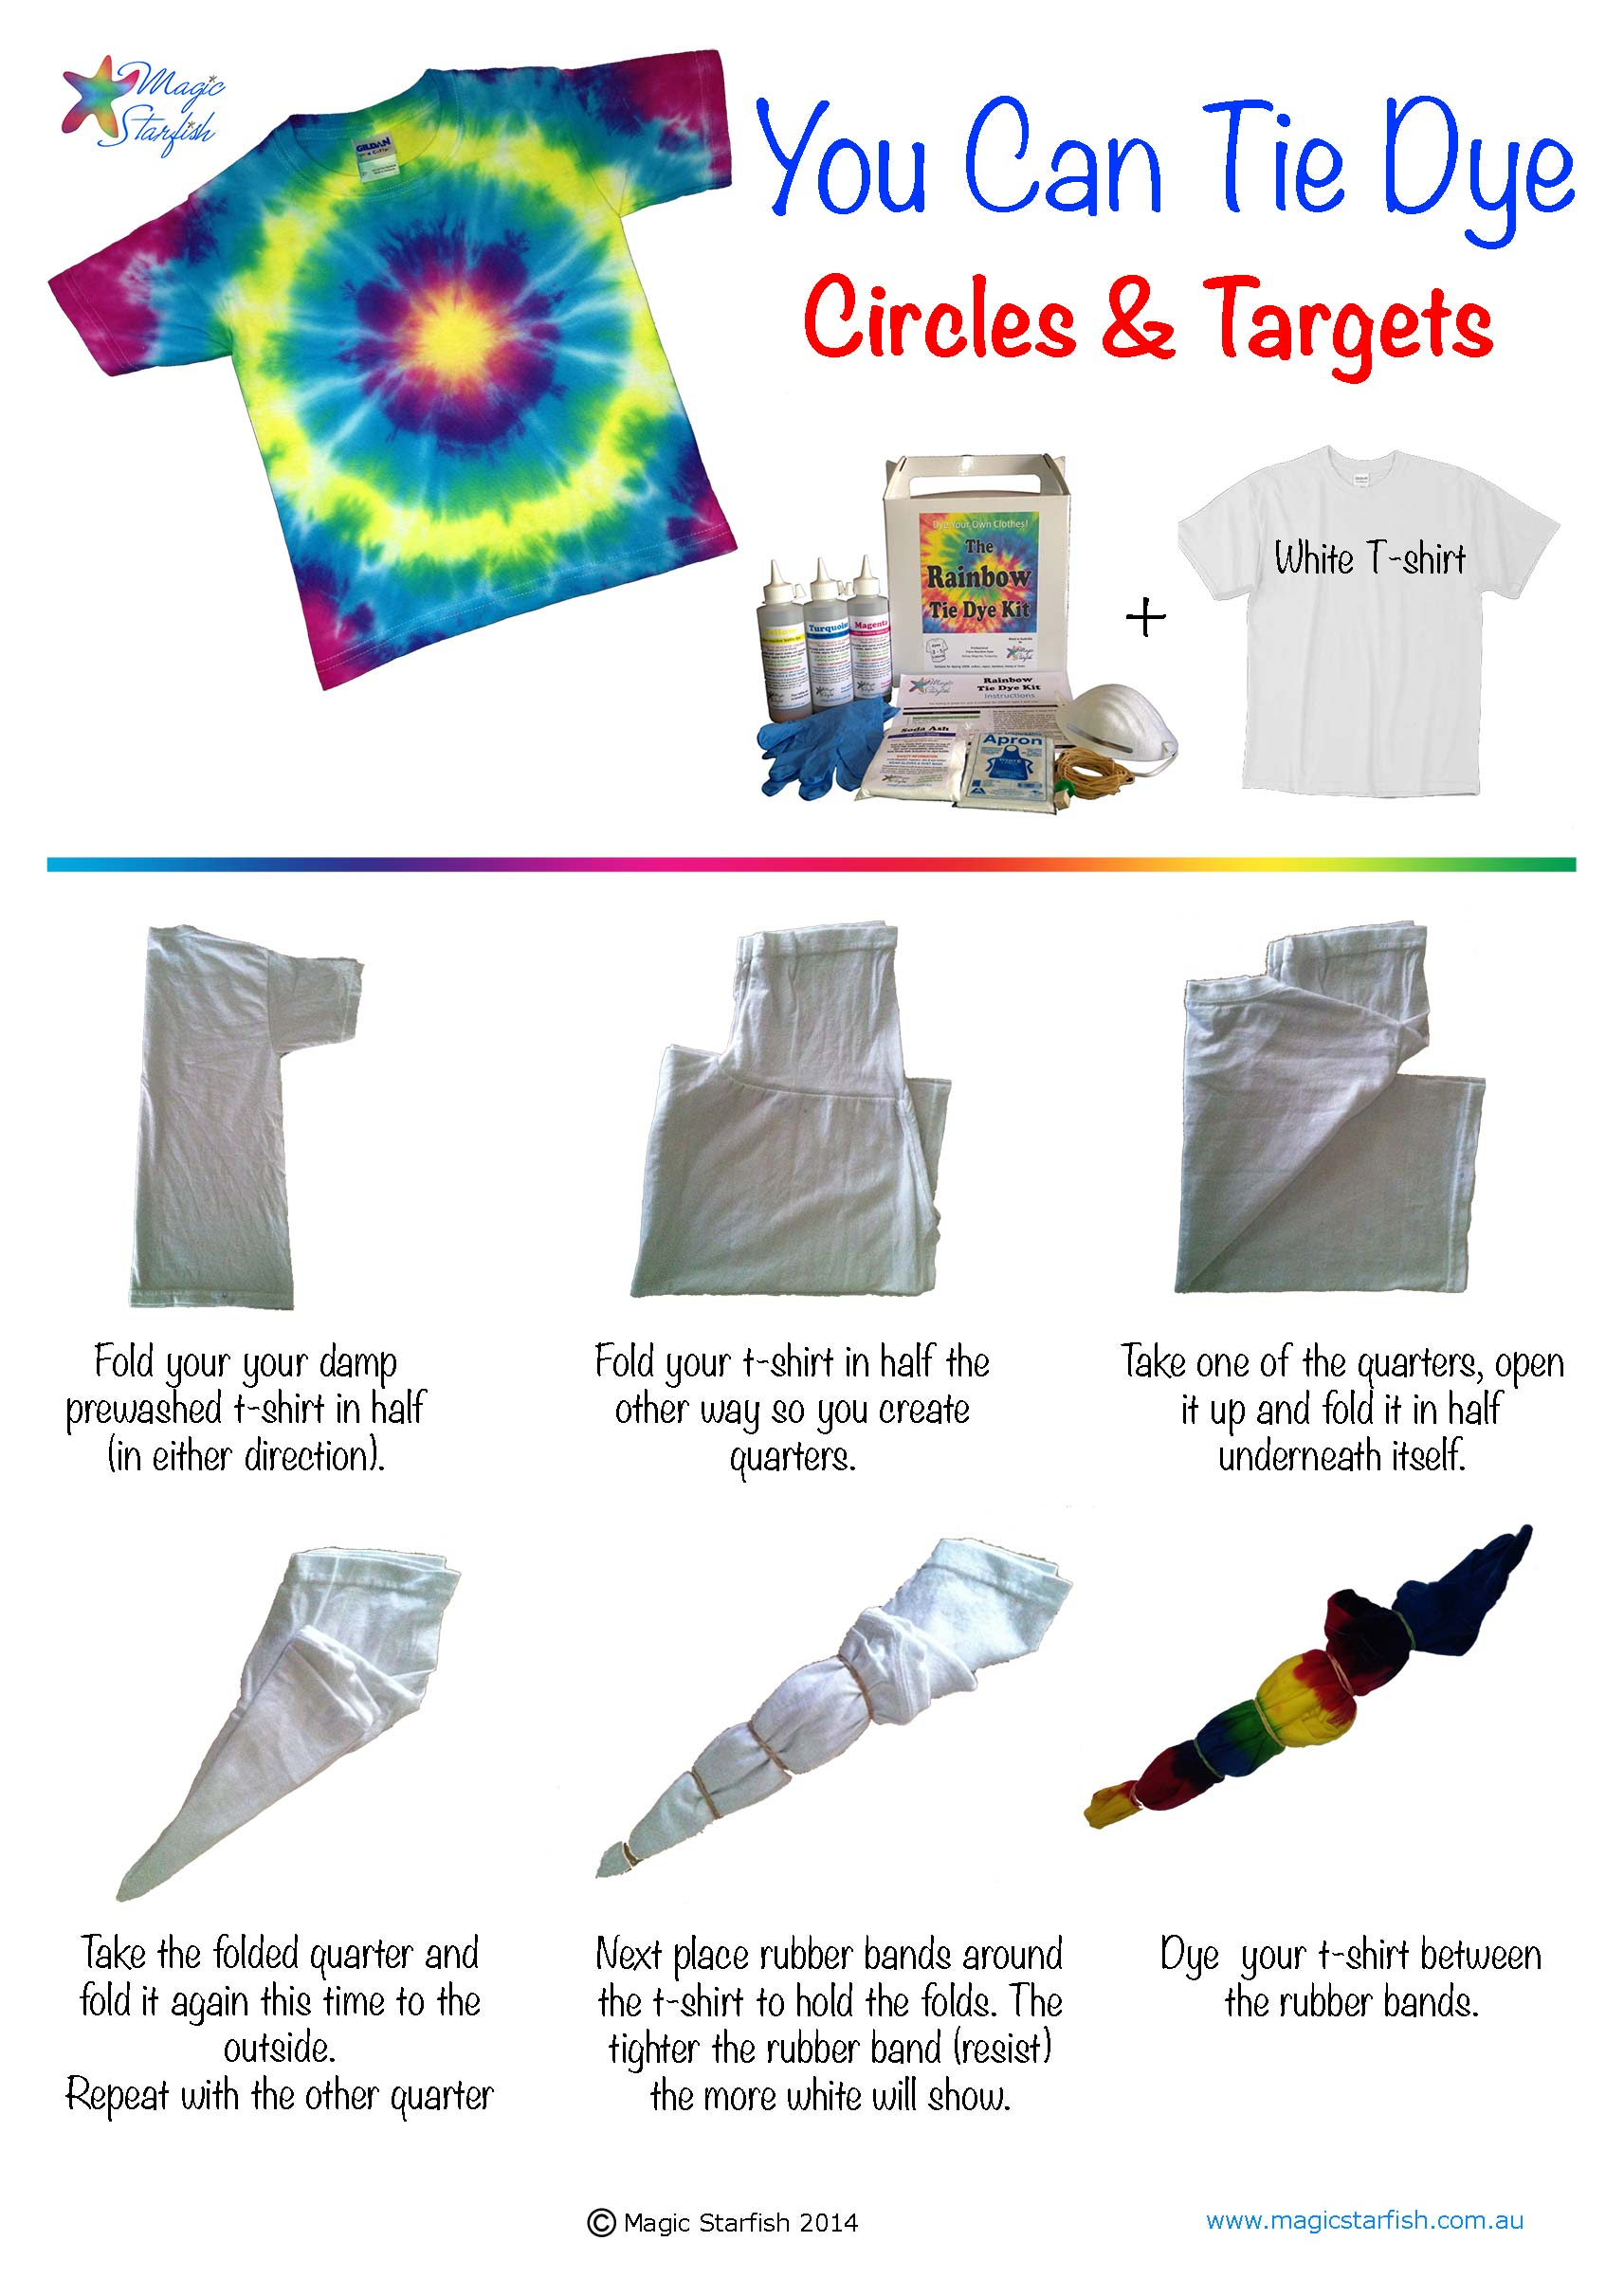 Magic Starfish How To Your Fabric To Tie Dye